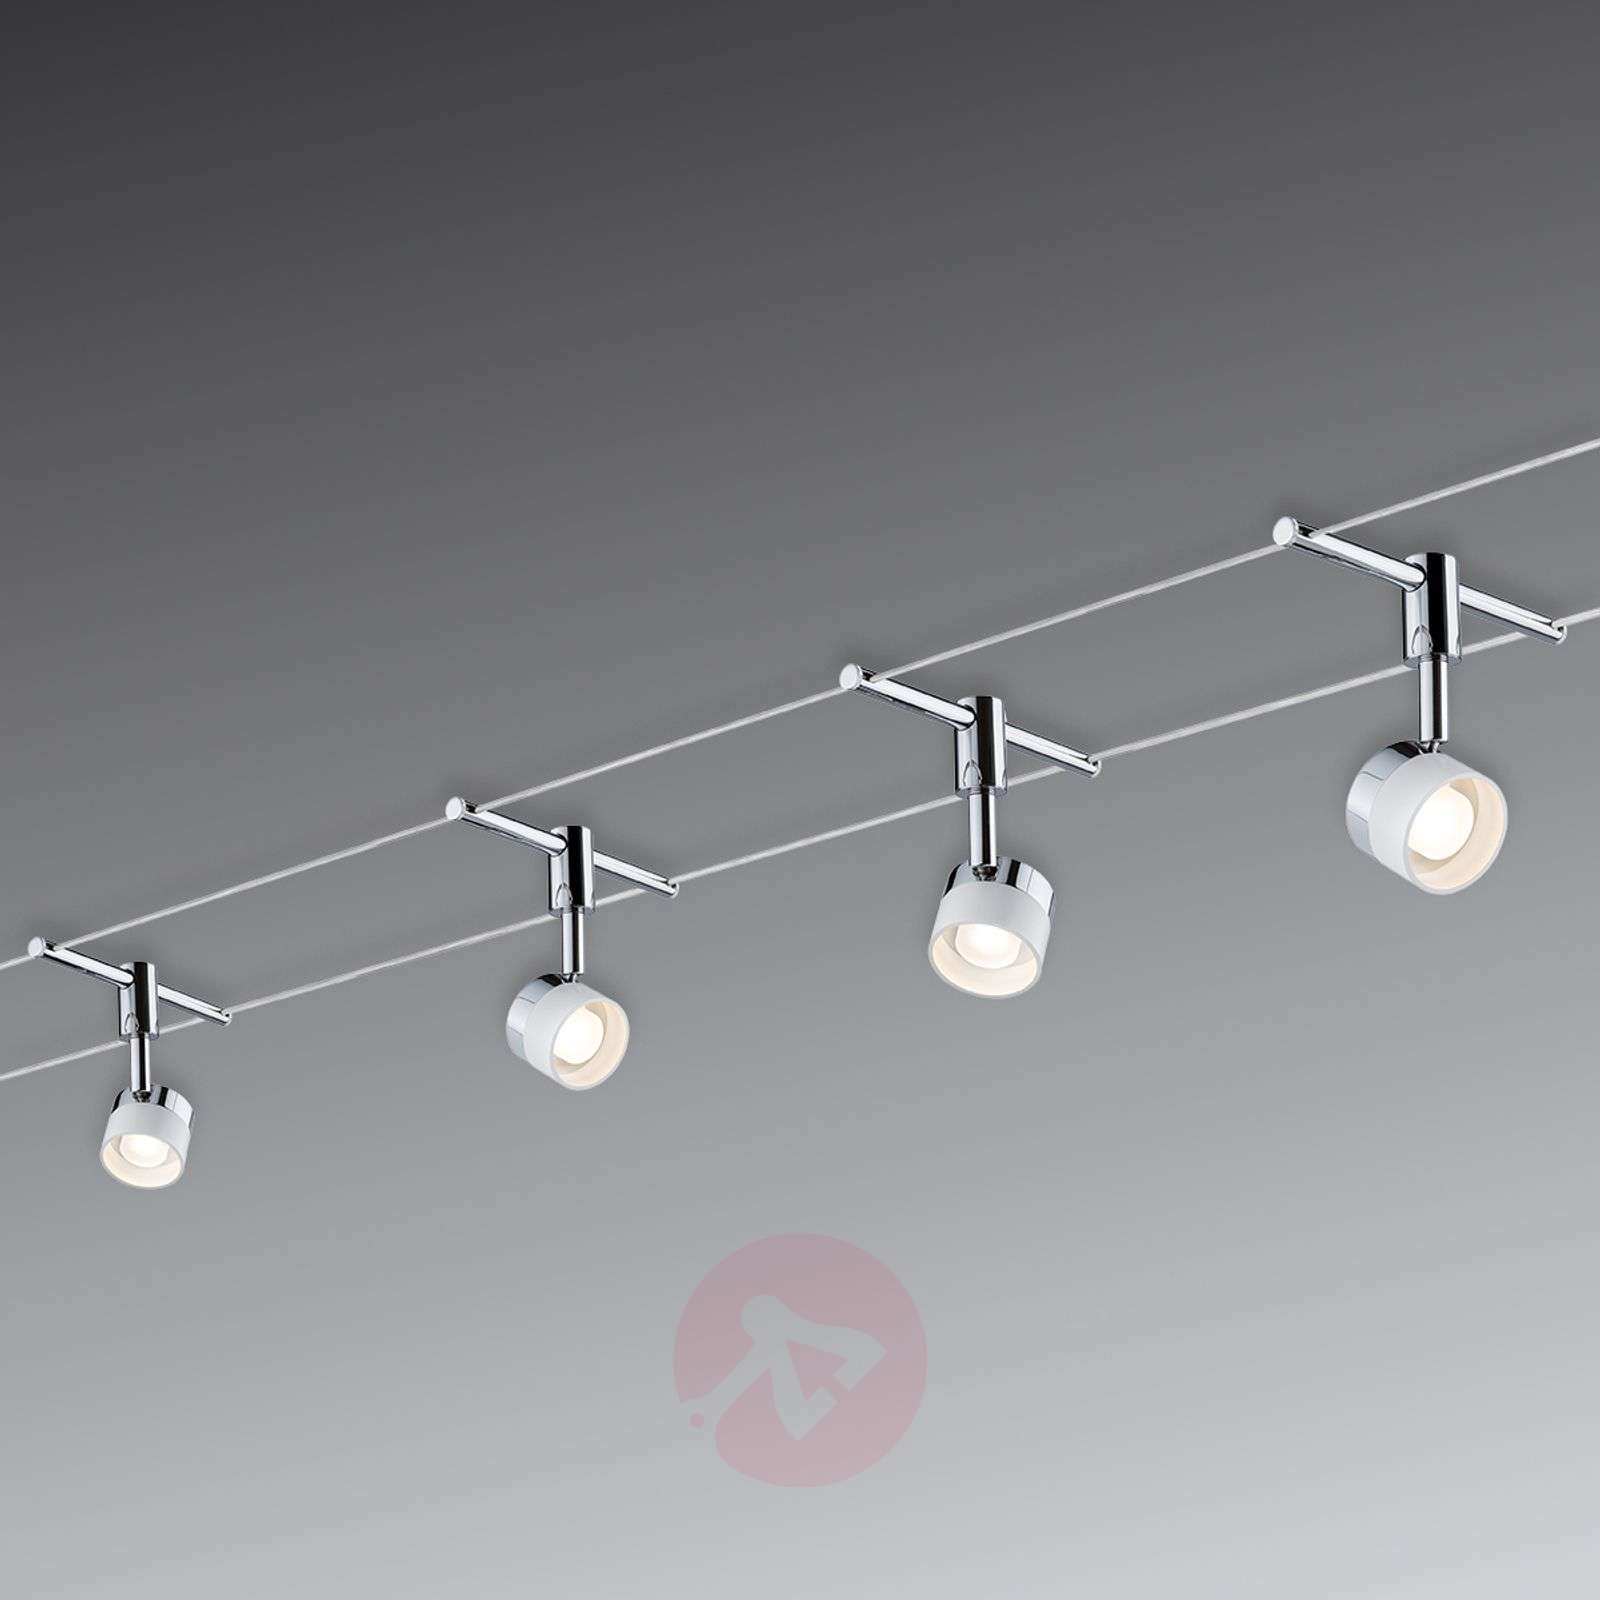 Cable Lighting Wiring Track Fixture With 4 Round Lights Led System Stage